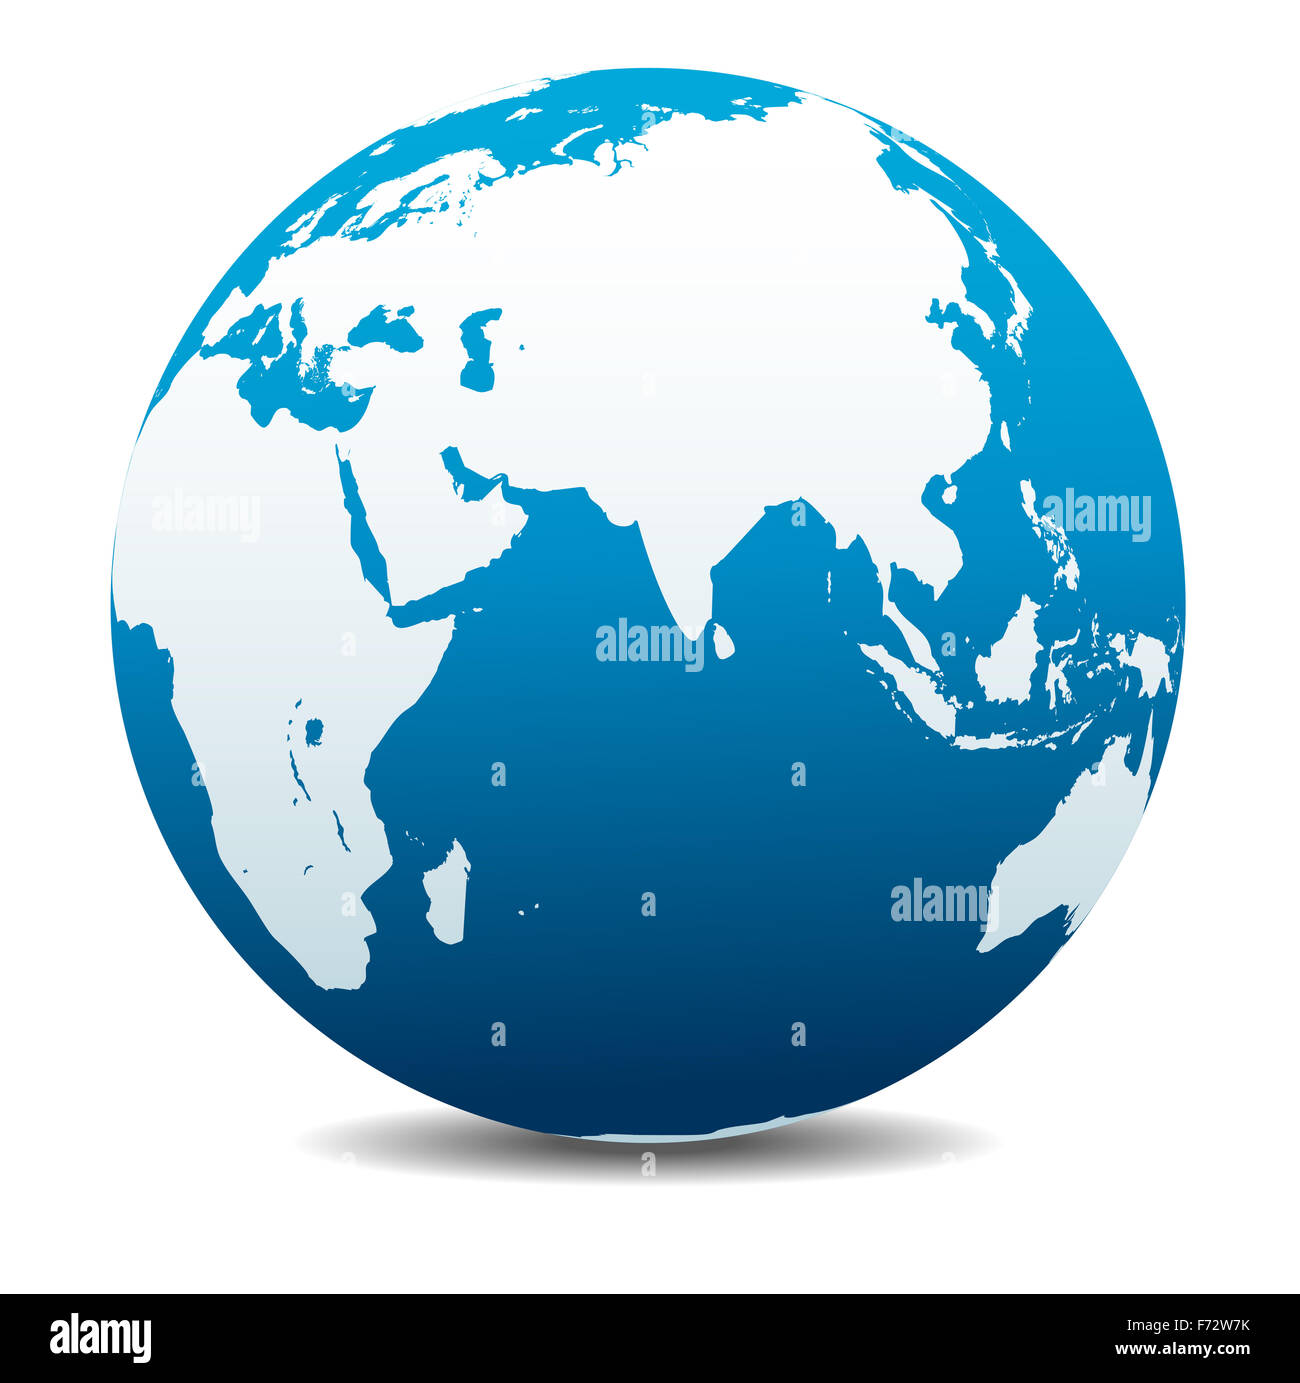 India, Africa, China, Indian Ocean, Global World Stock Photo